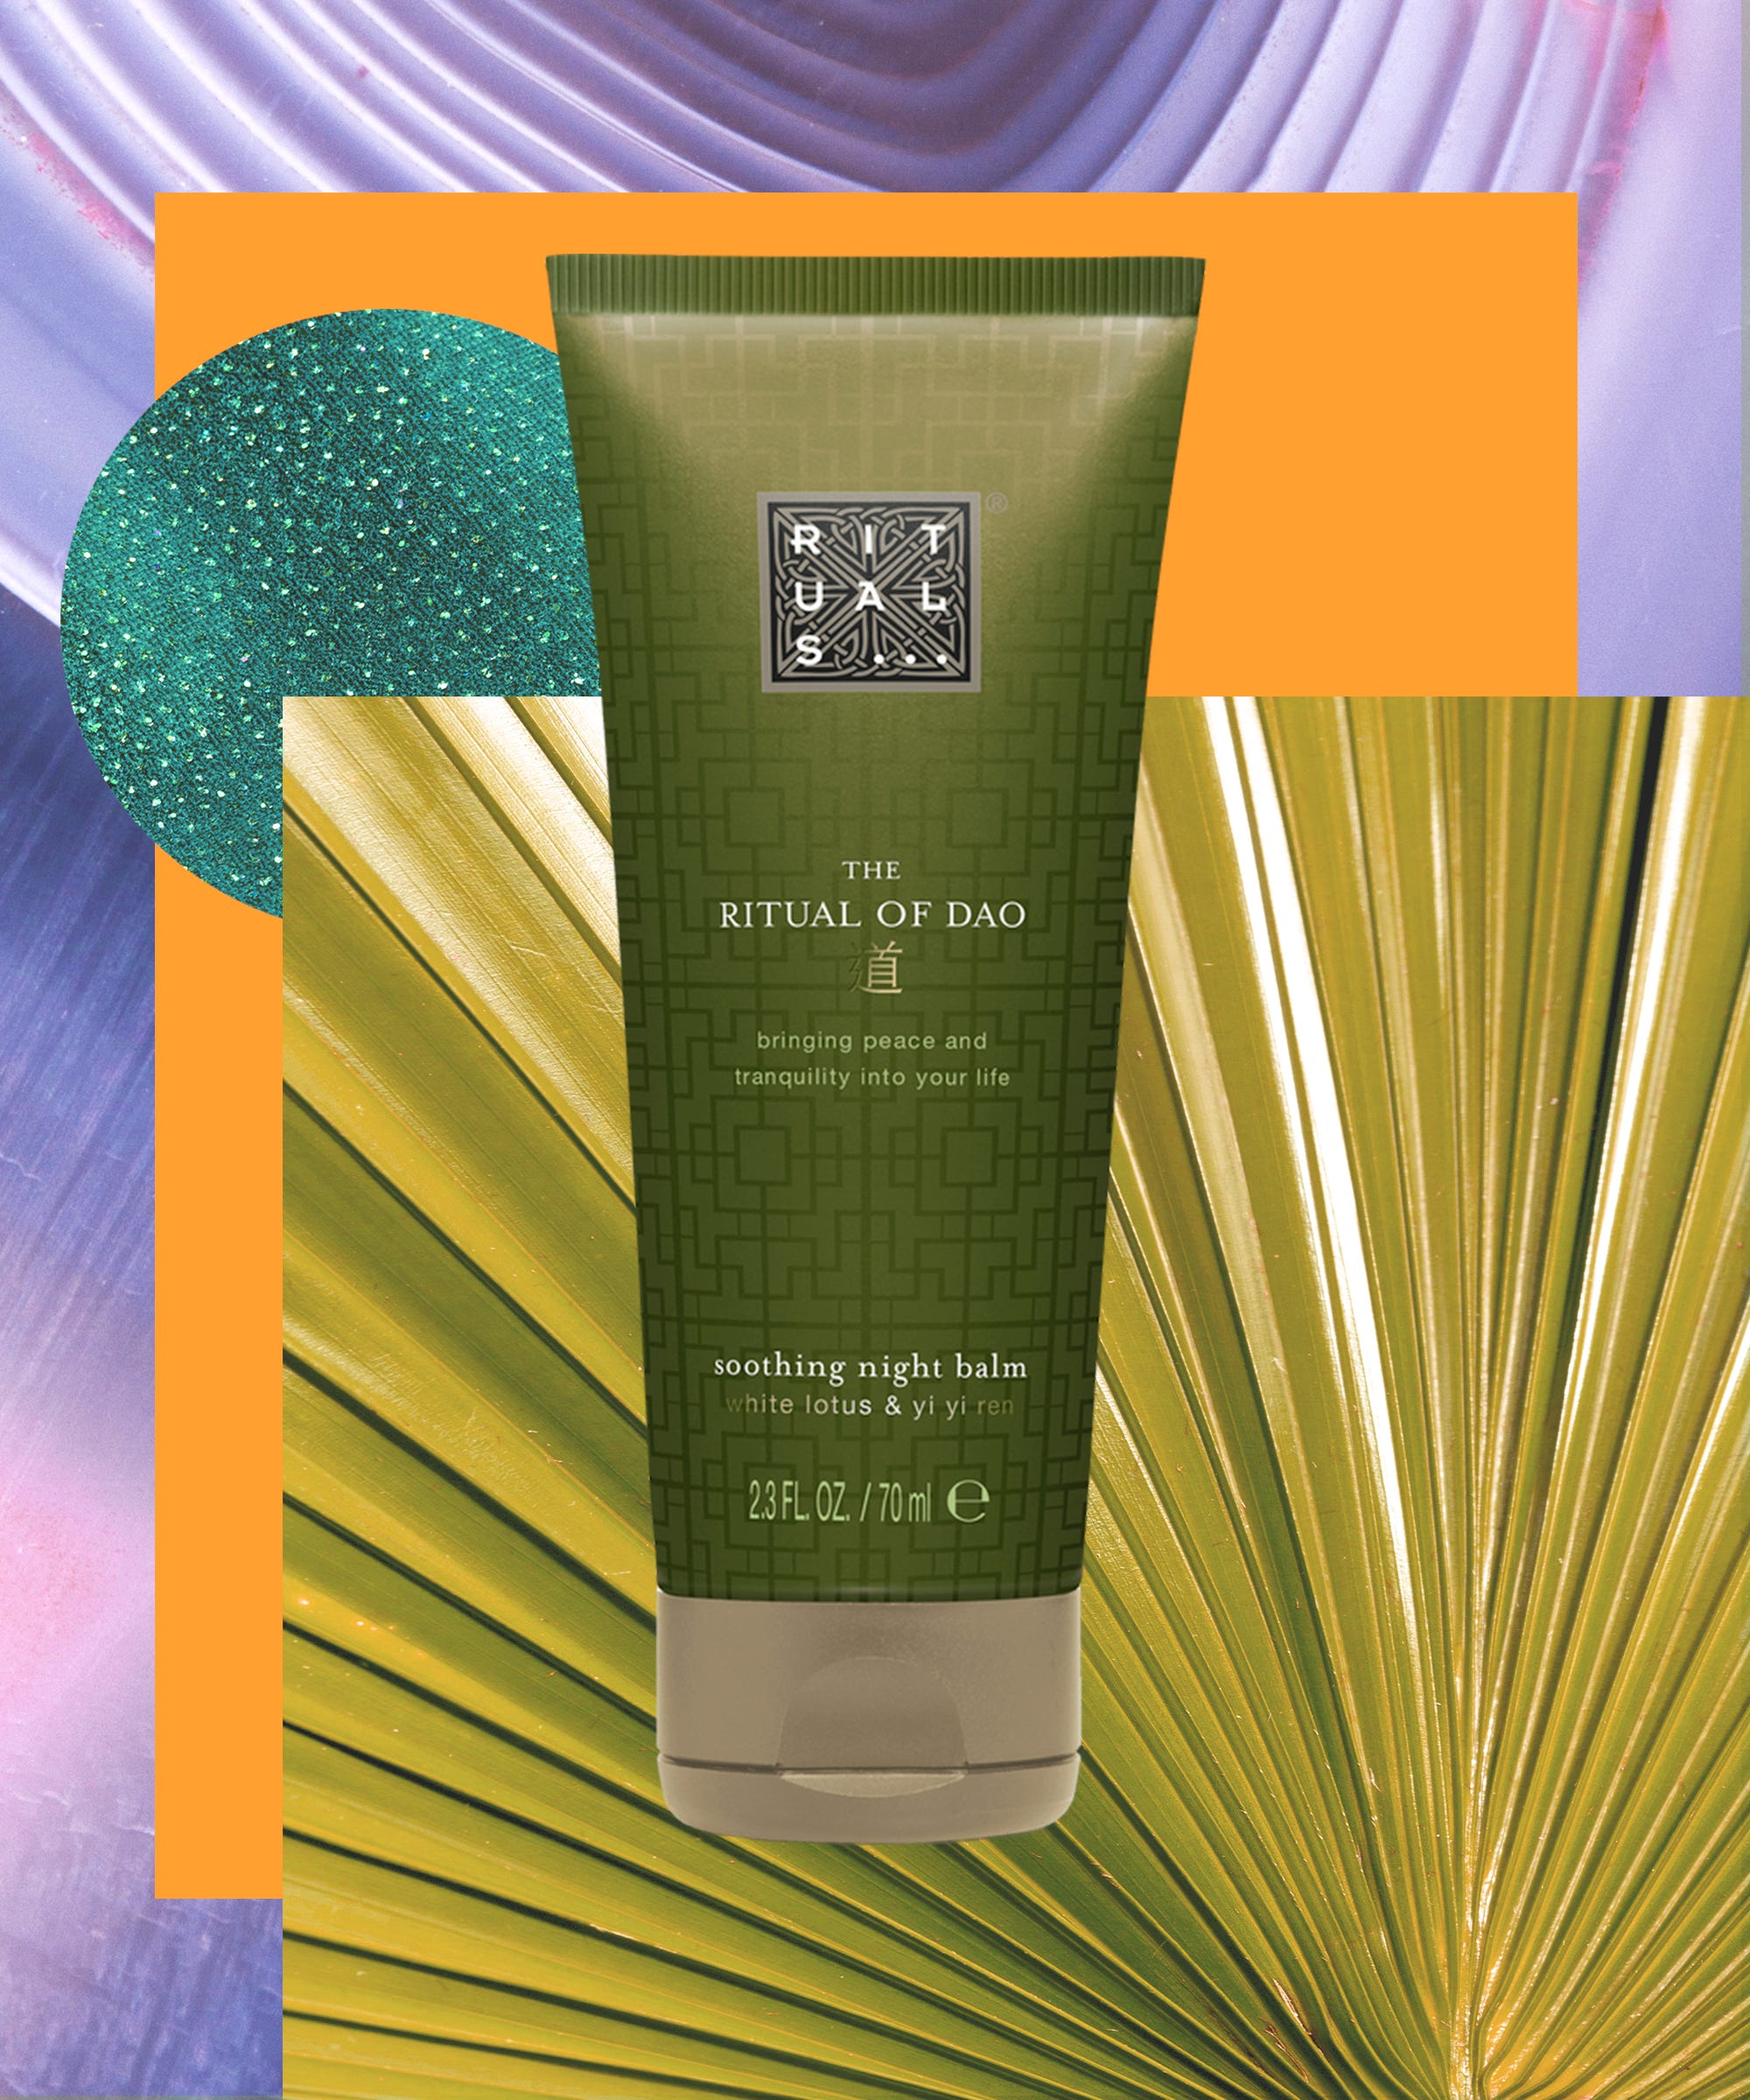 5 Foot Creams That Won't Make Your Sandals Fly Off